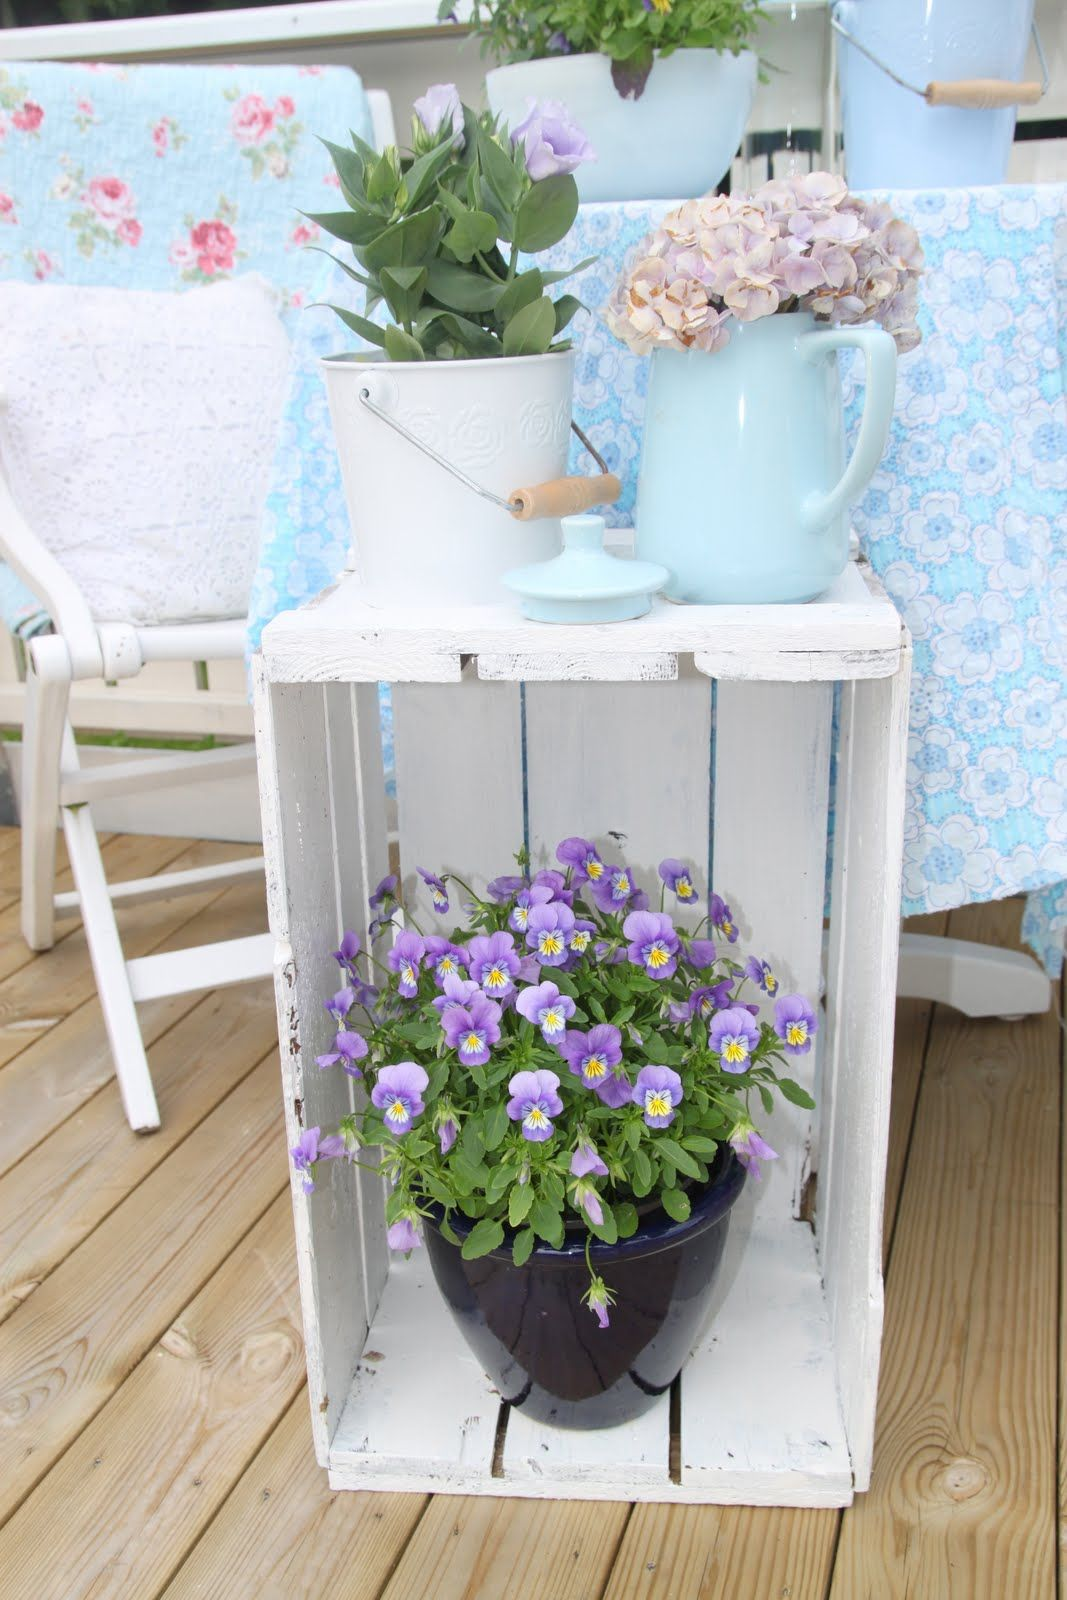 Cute spring or summer porch idea or leave natural looking for the